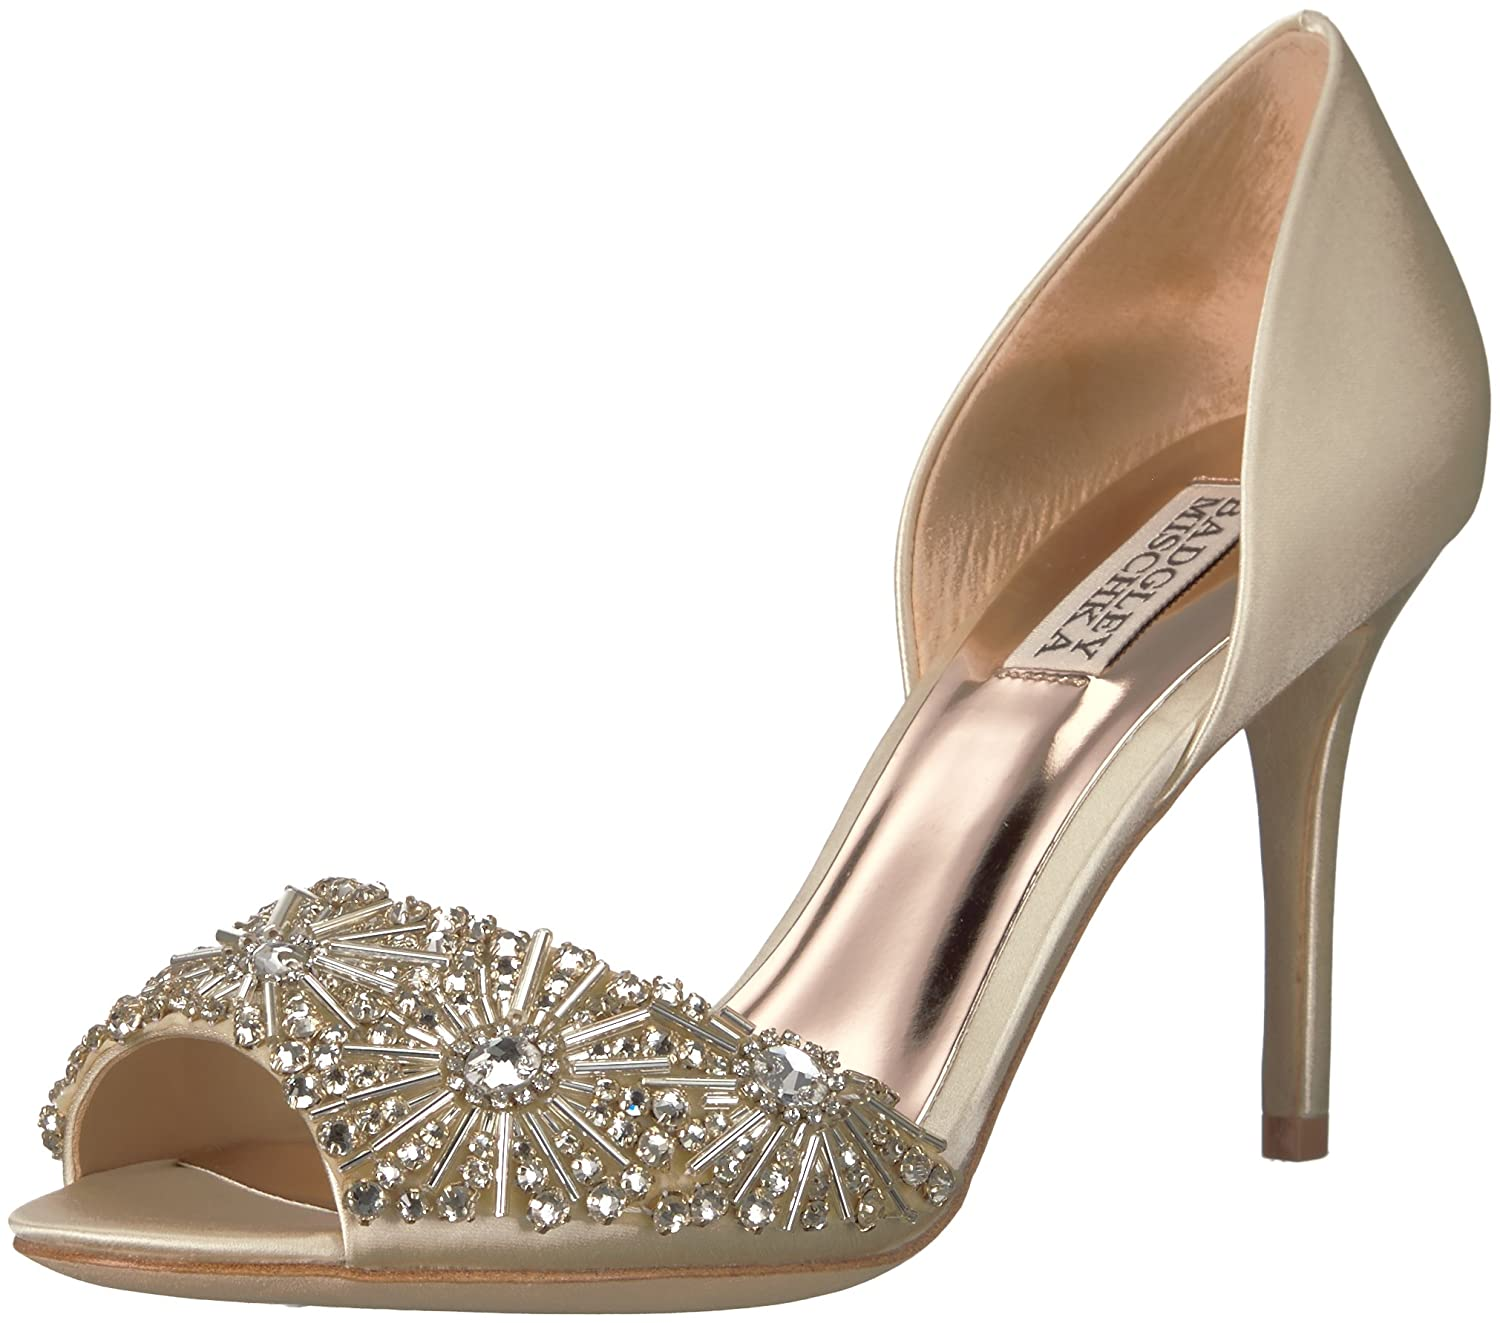 Badgley Mischka Women's Maria Pump